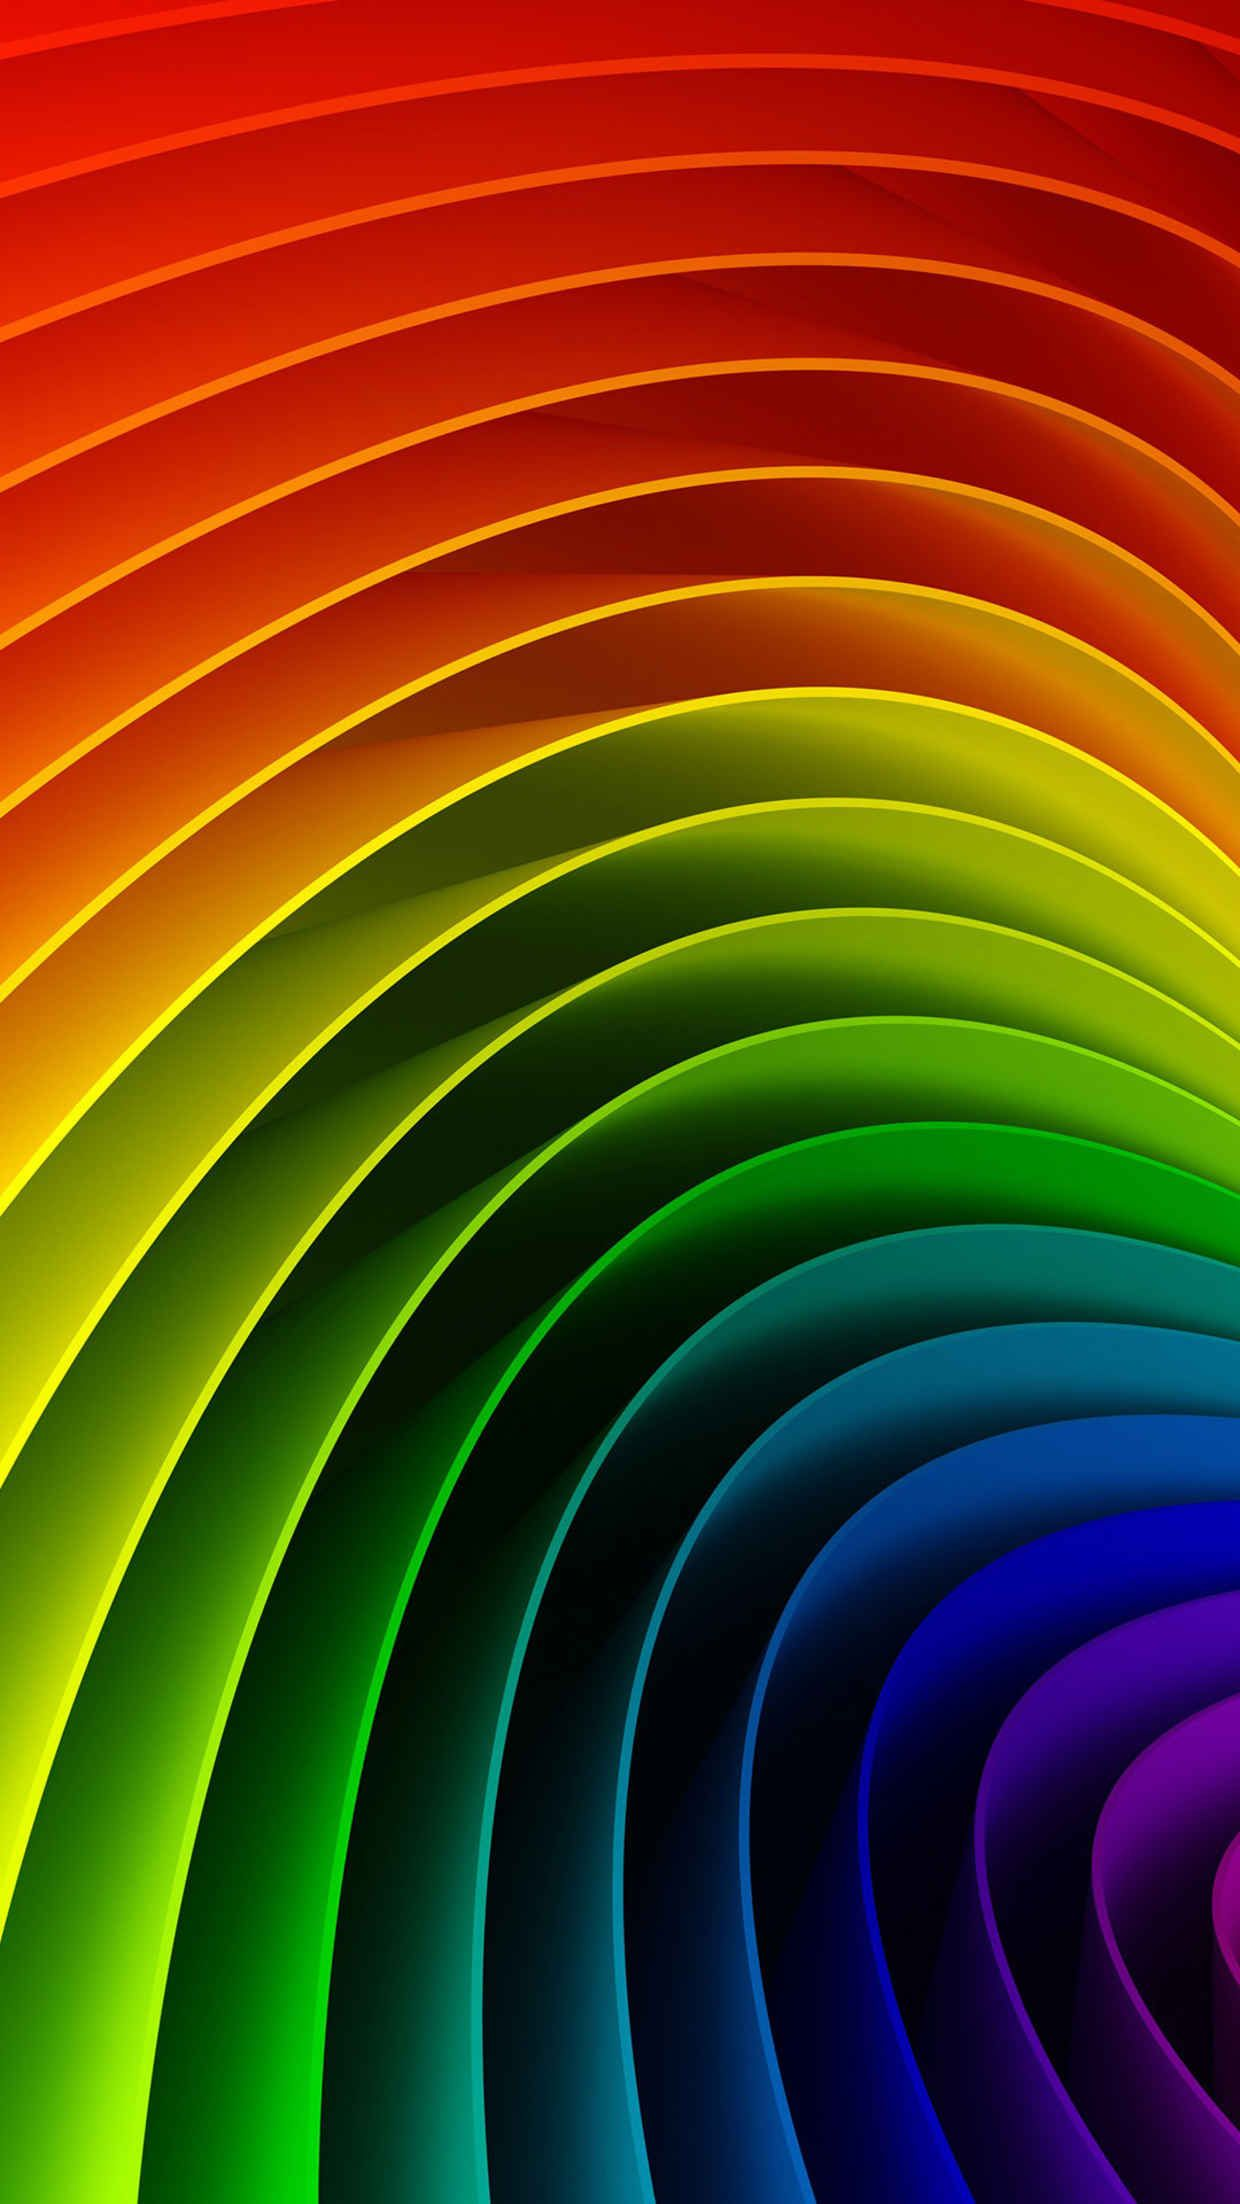 25 Awesome Iphone 6 Wallpapers Rainbow Colors Rainbow Art